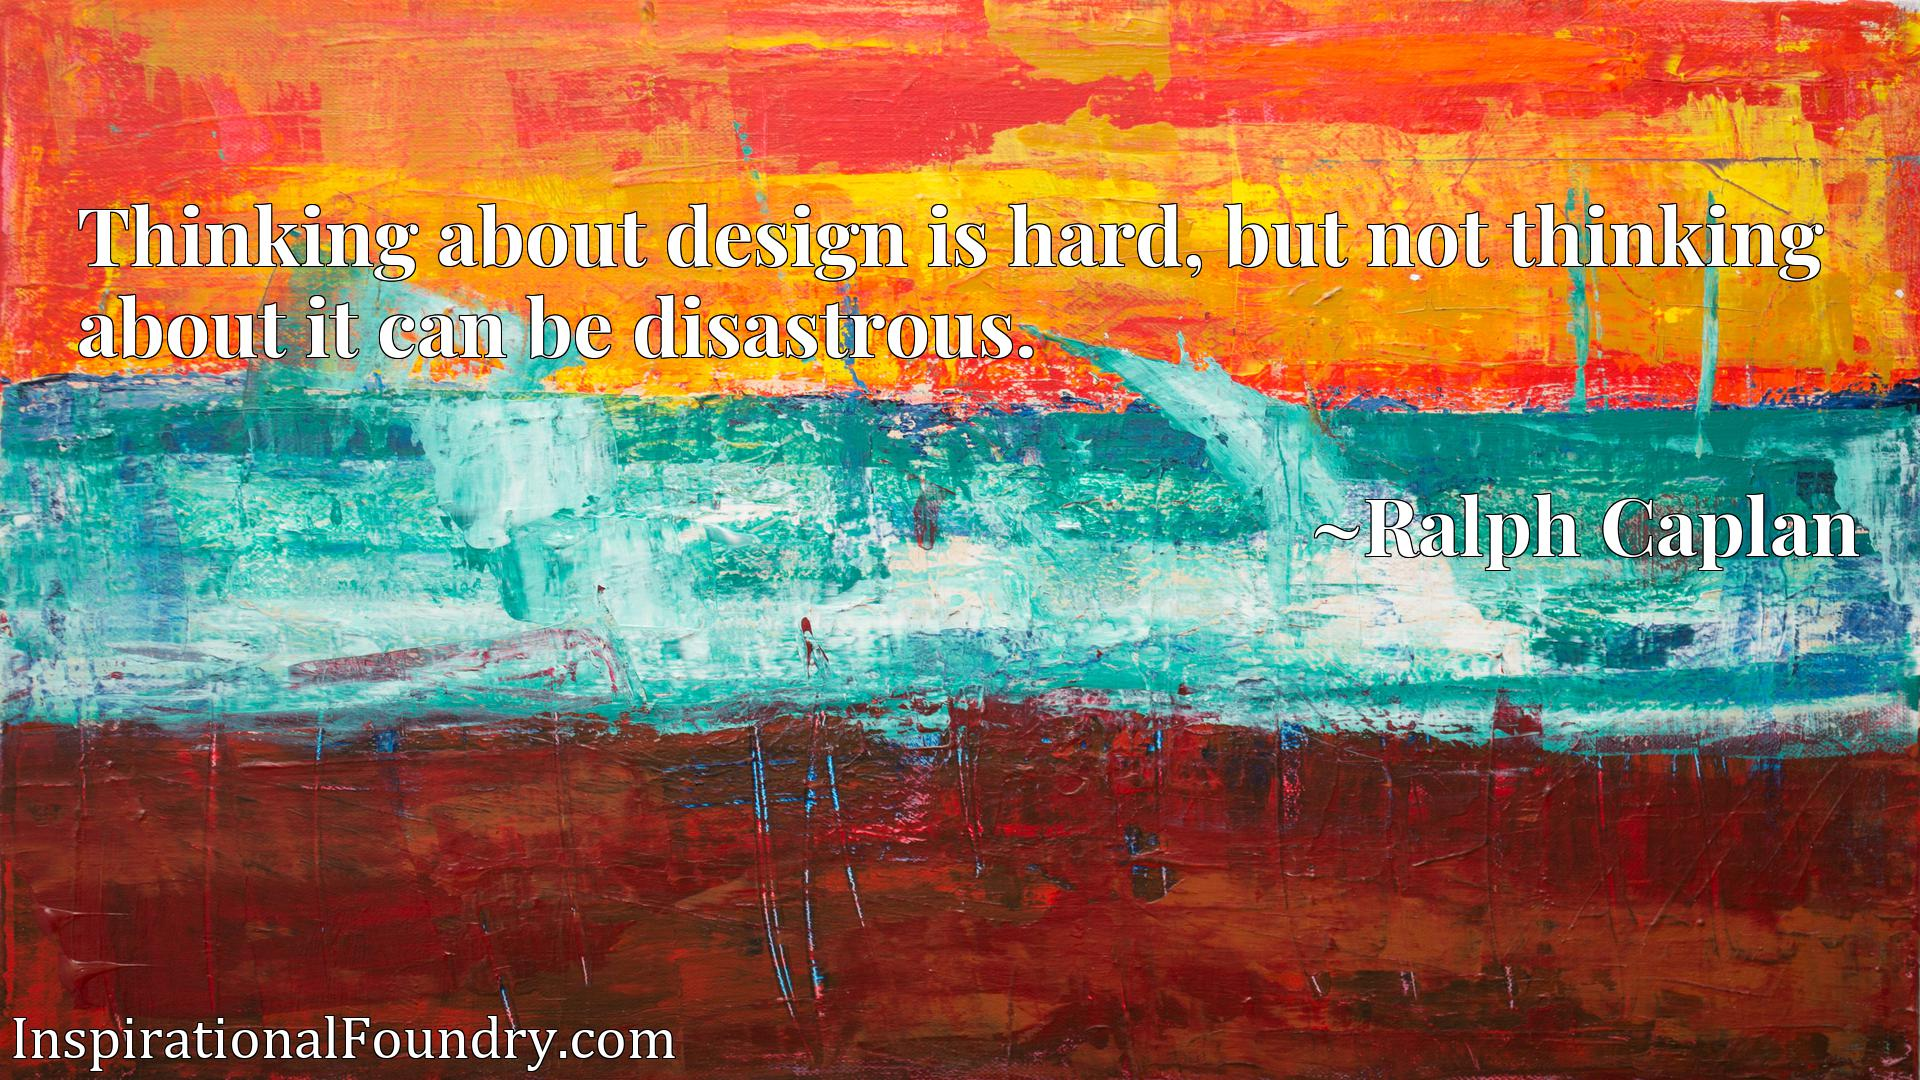 Thinking about design is hard, but not thinking about it can be disastrous.